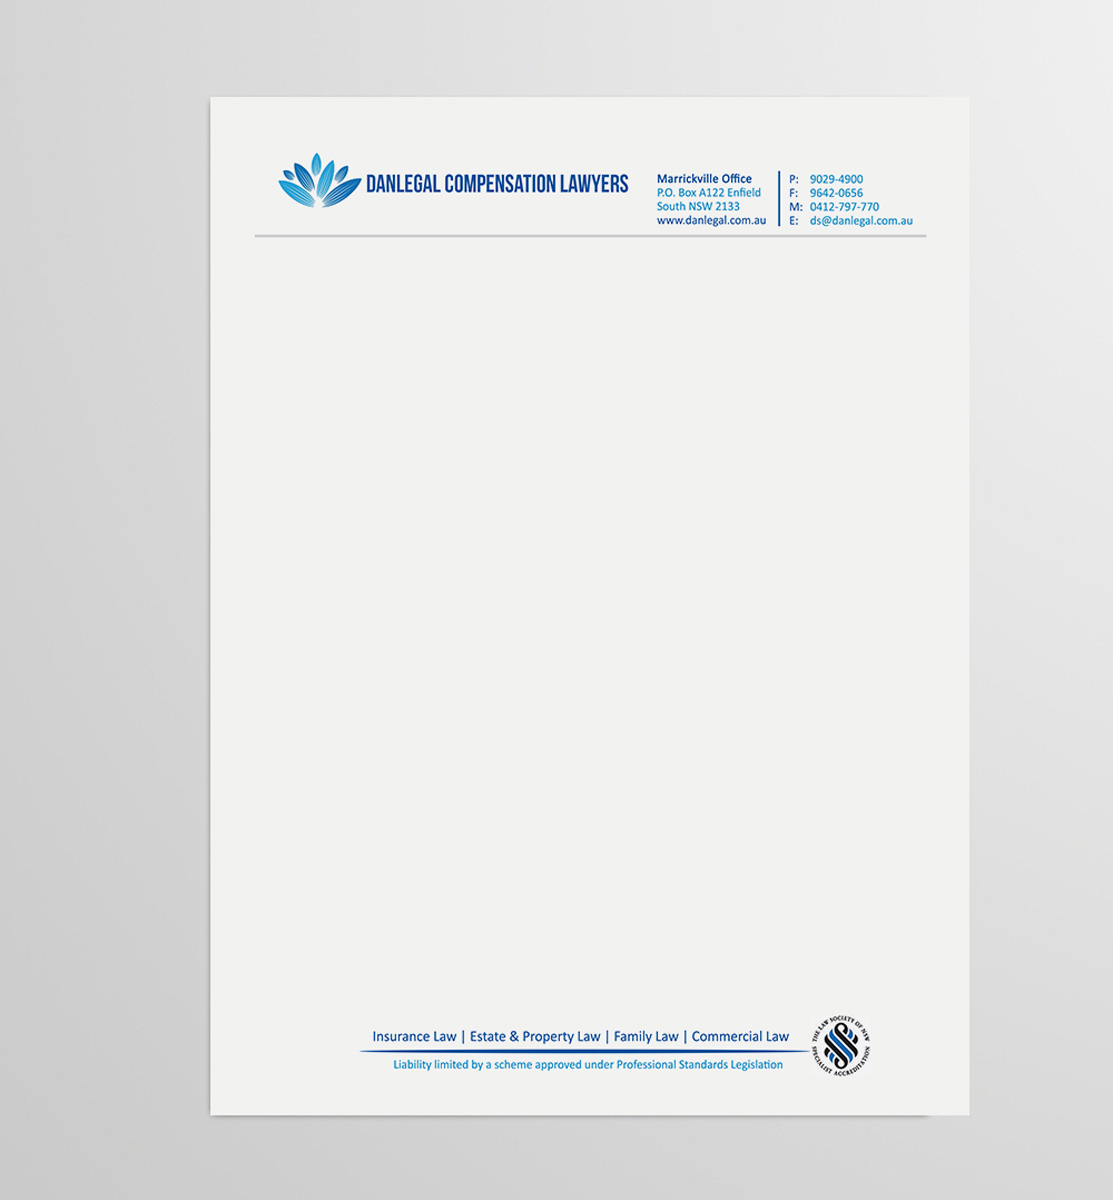 Elegant Professional Corporate Letterhead Template 000890: Elegant, Playful, It Professional Letterhead Design For A